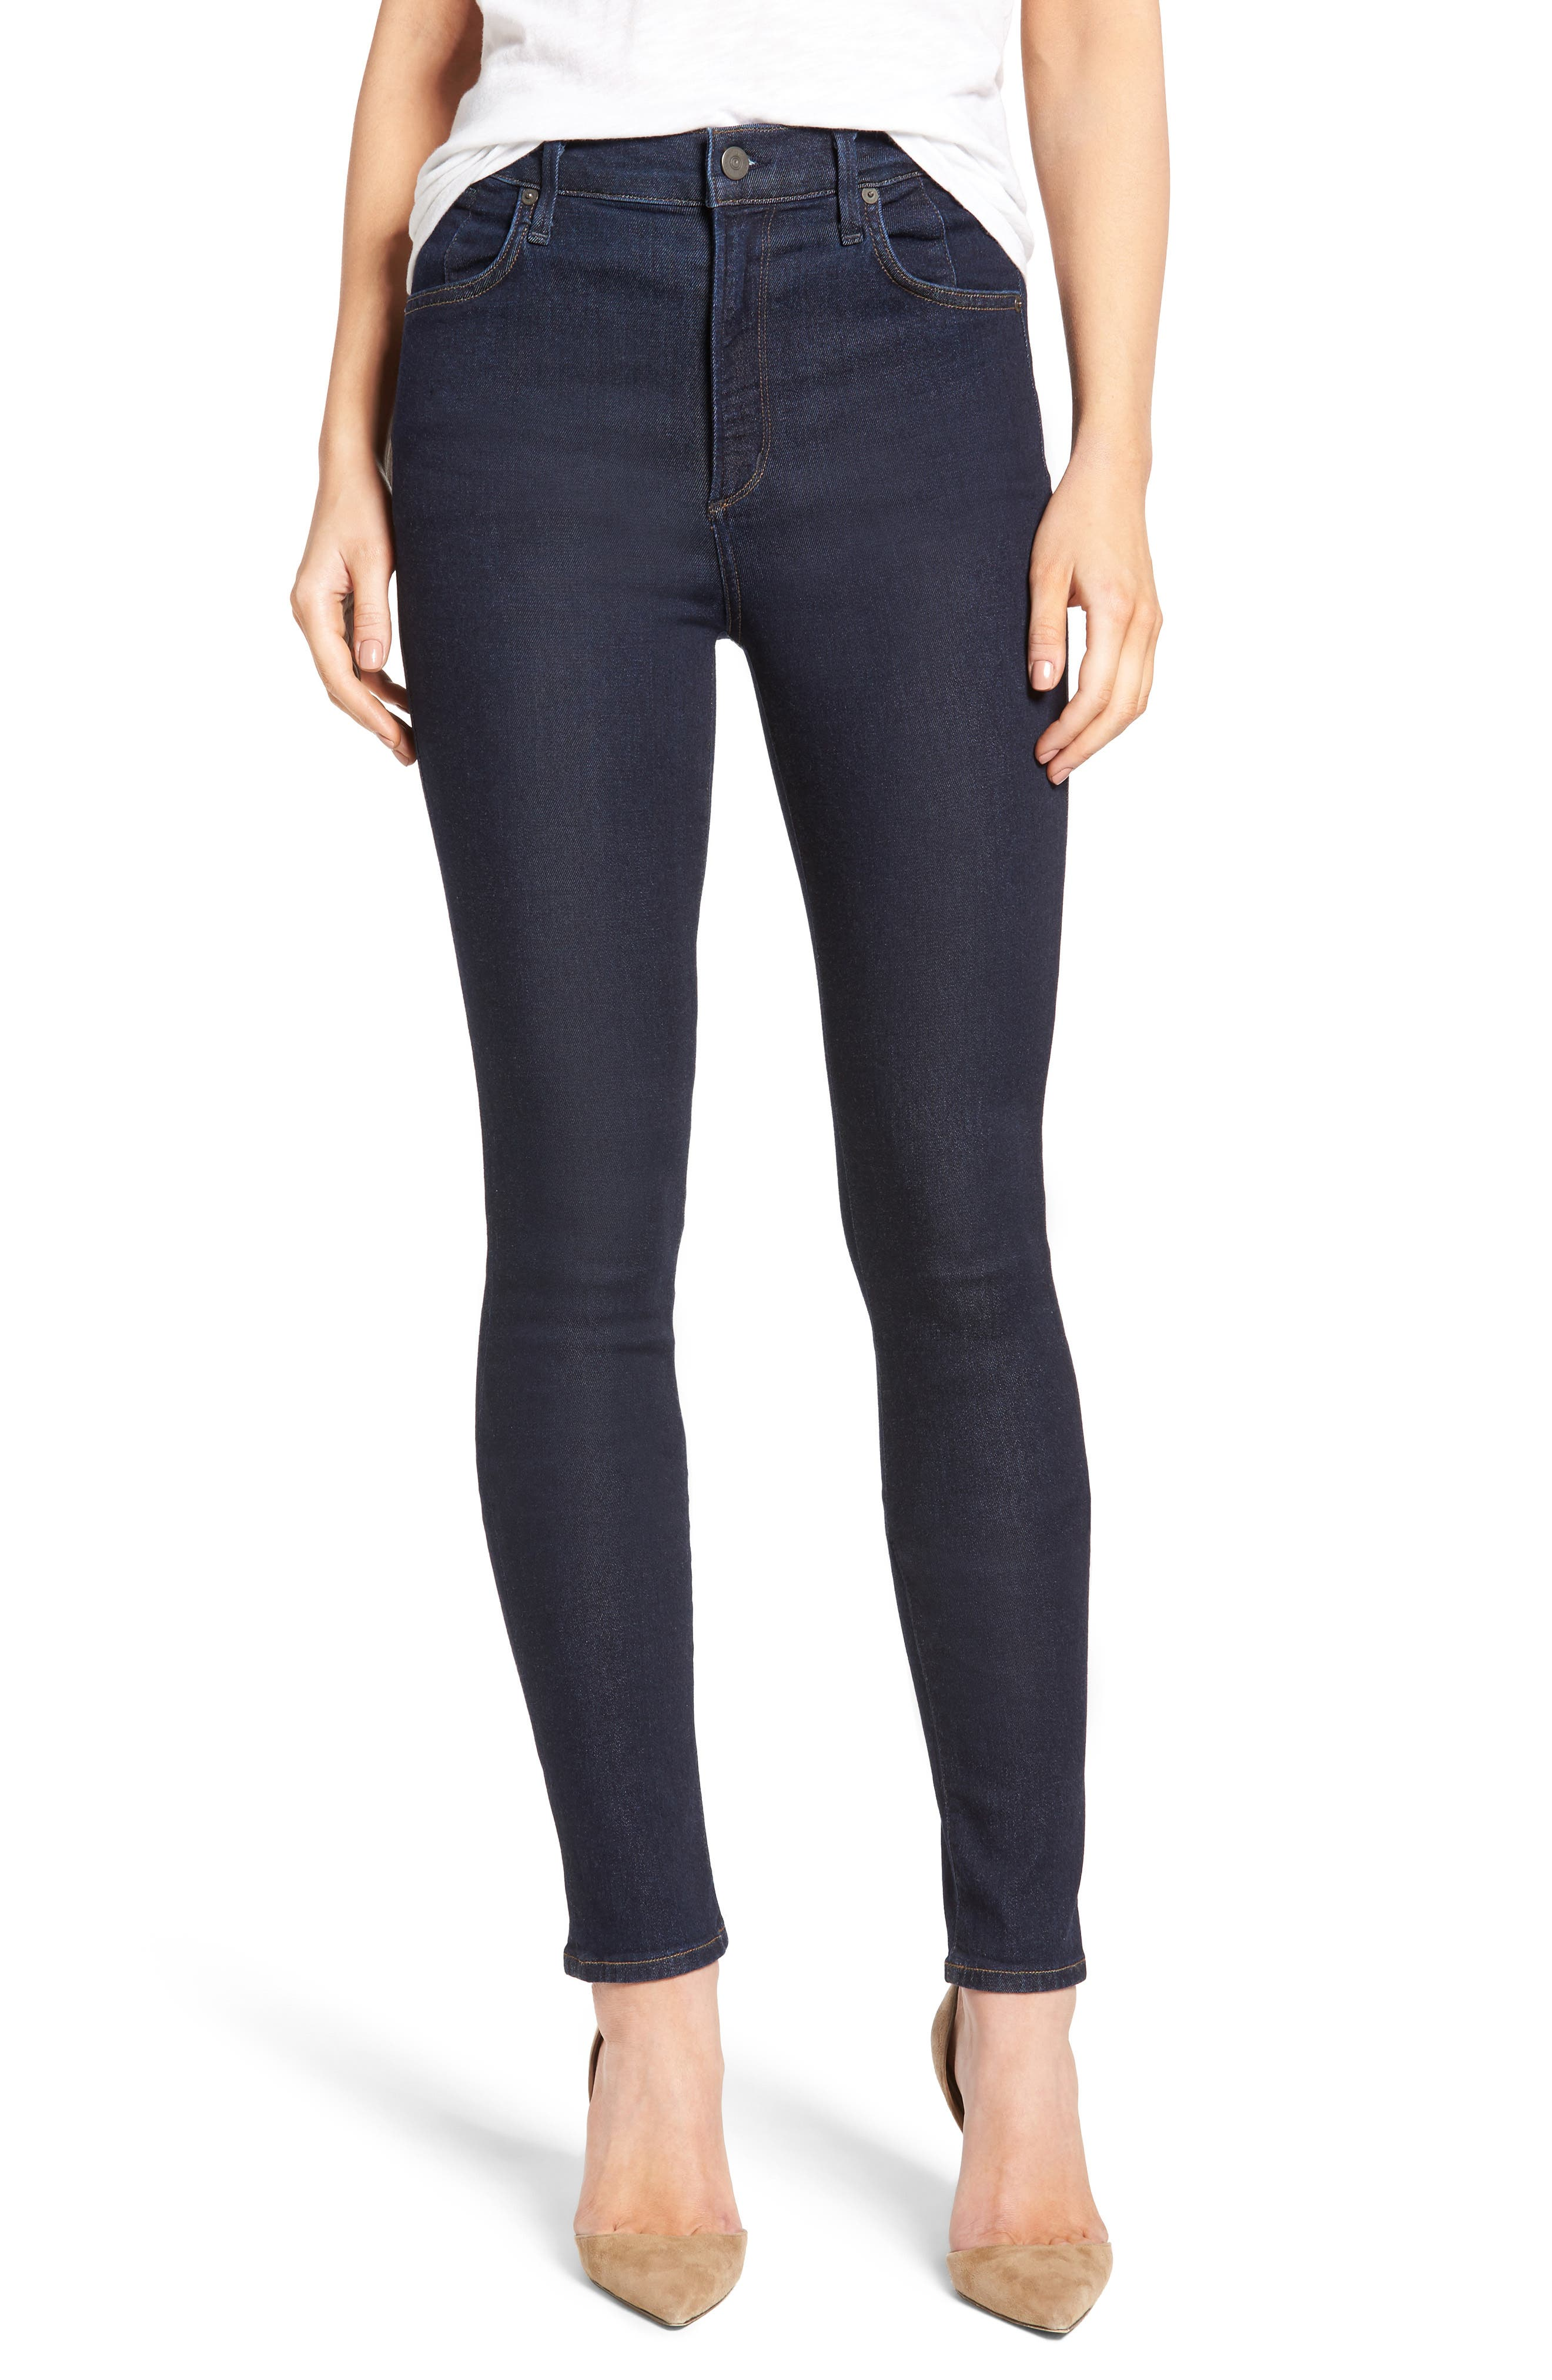 Alternate Image 1 Selected - Citizens of Humanity Carlie High Waist Skinny Jeans (Ozone Rinse)